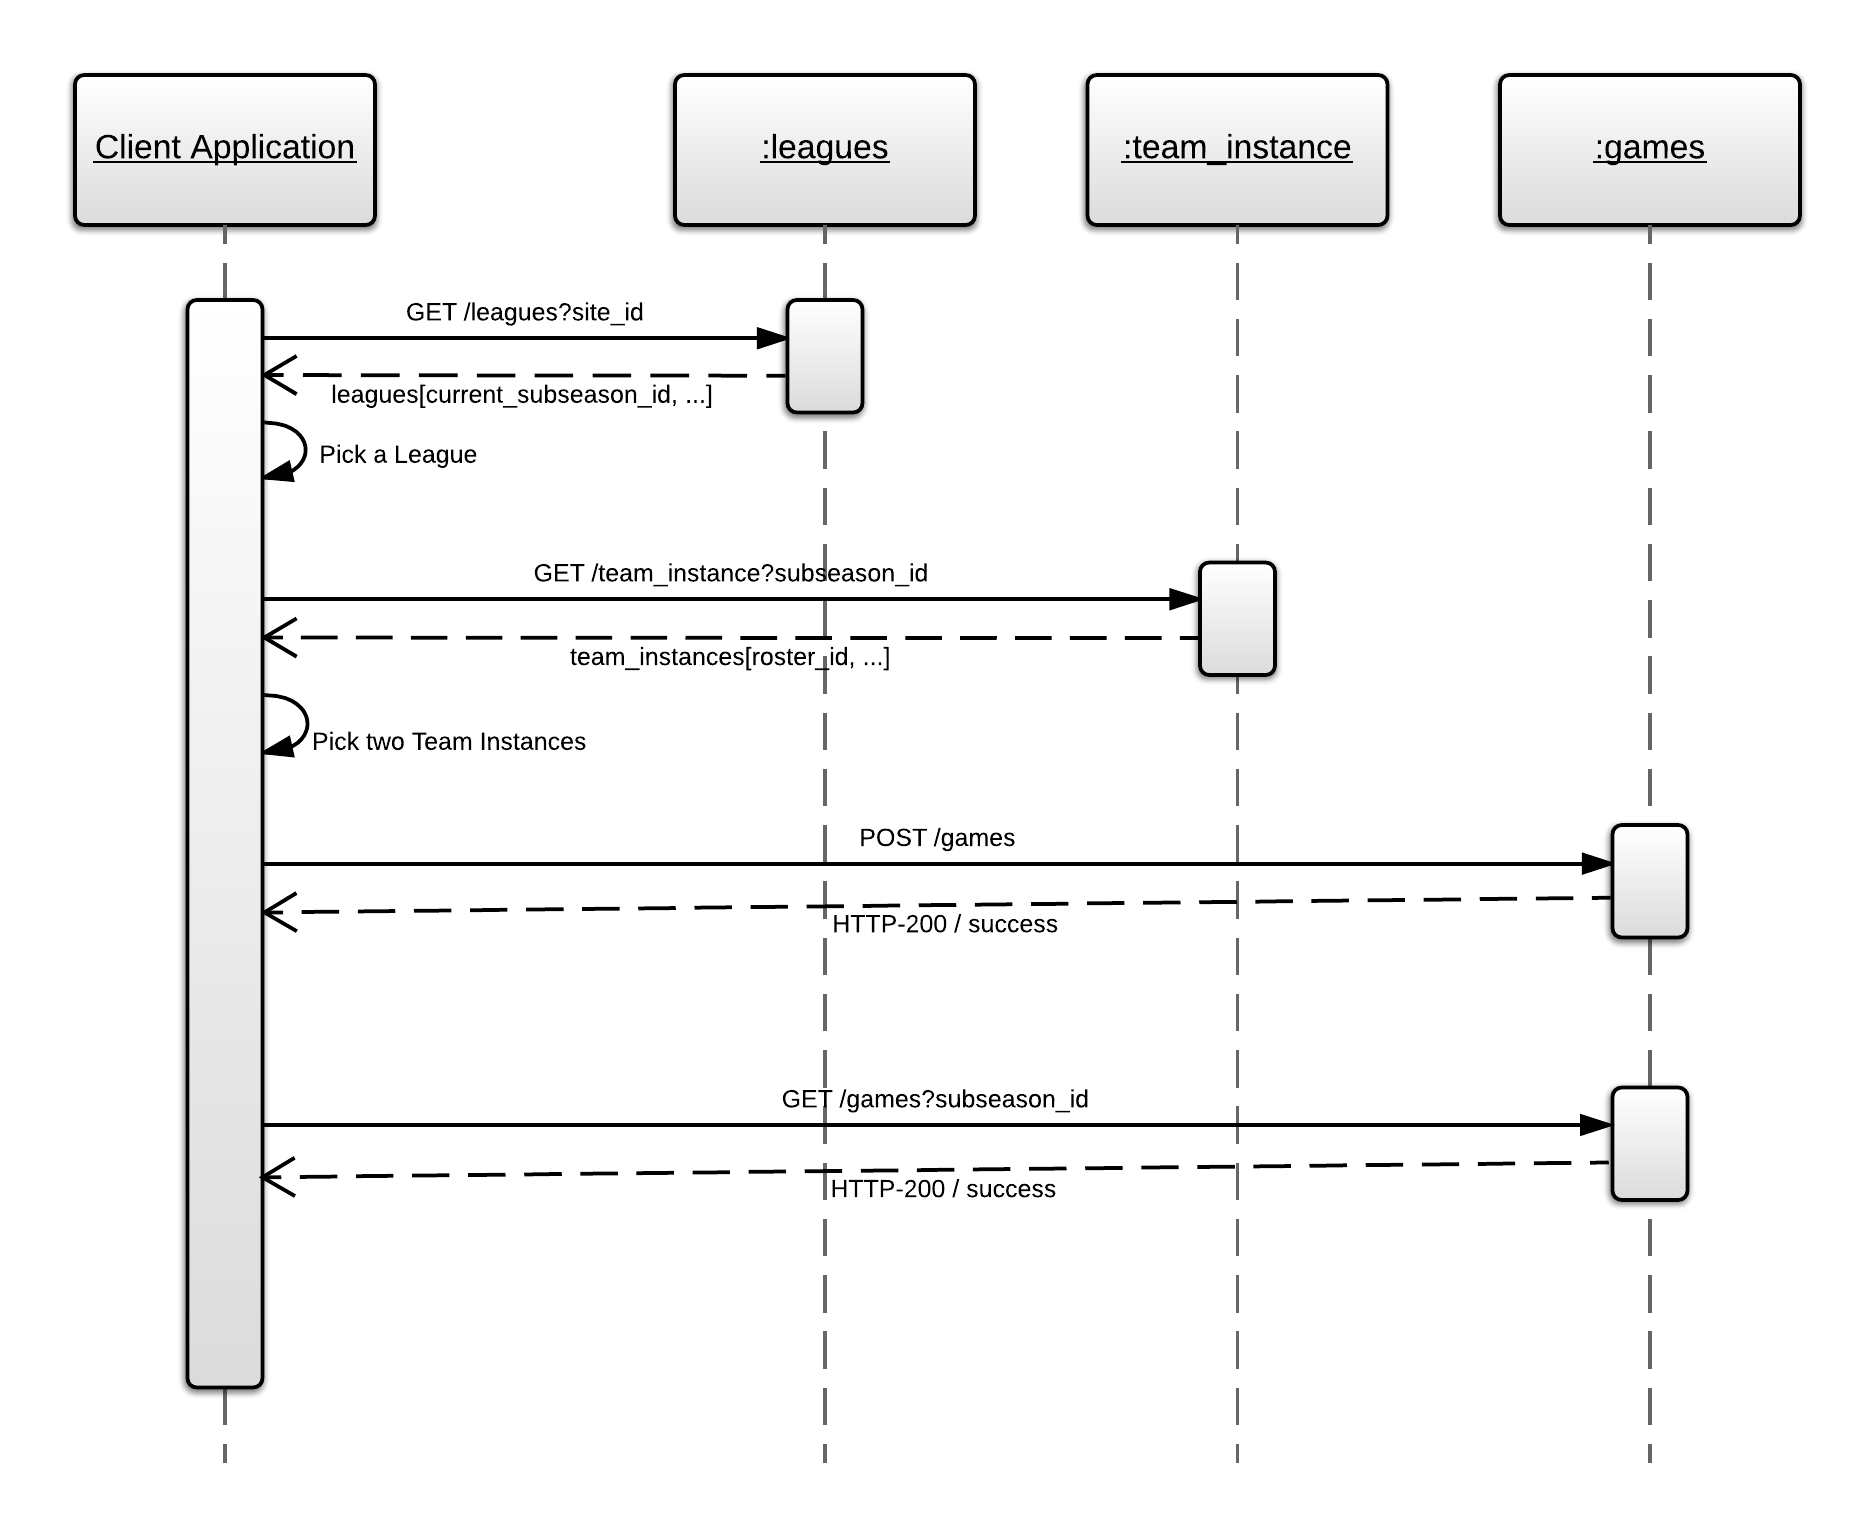 Managing events and games sportsengine api workflows ccuart Images